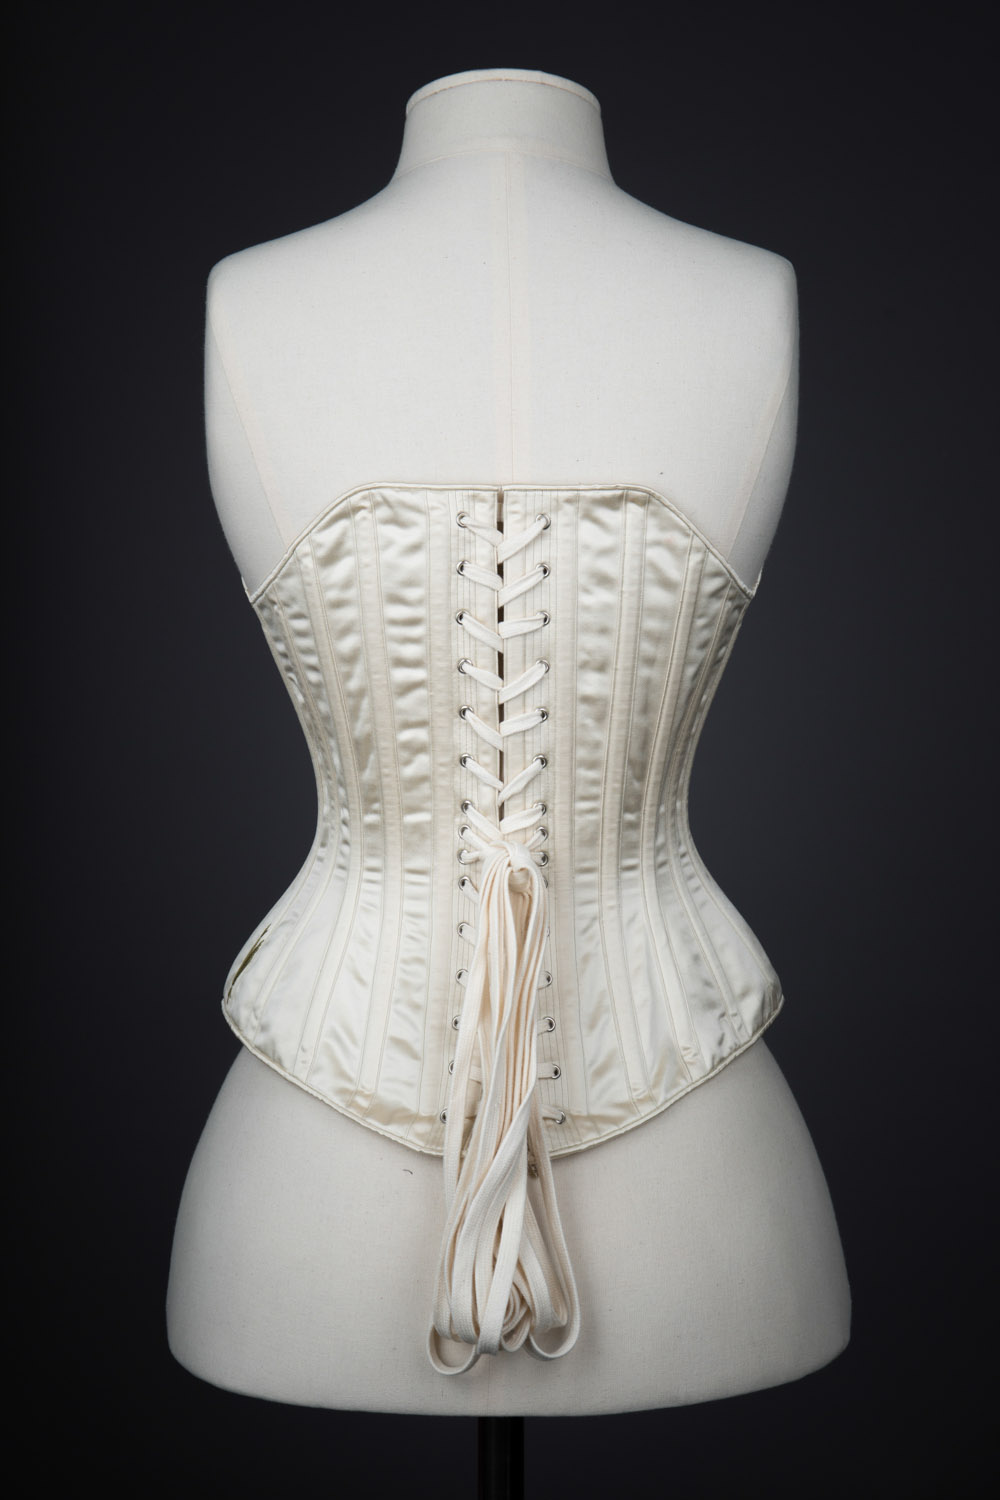 c. 1890s Symington Reproduction Silk Corset By Cathy Hay. The Underpinnings Museum. Photography Tigz Rice